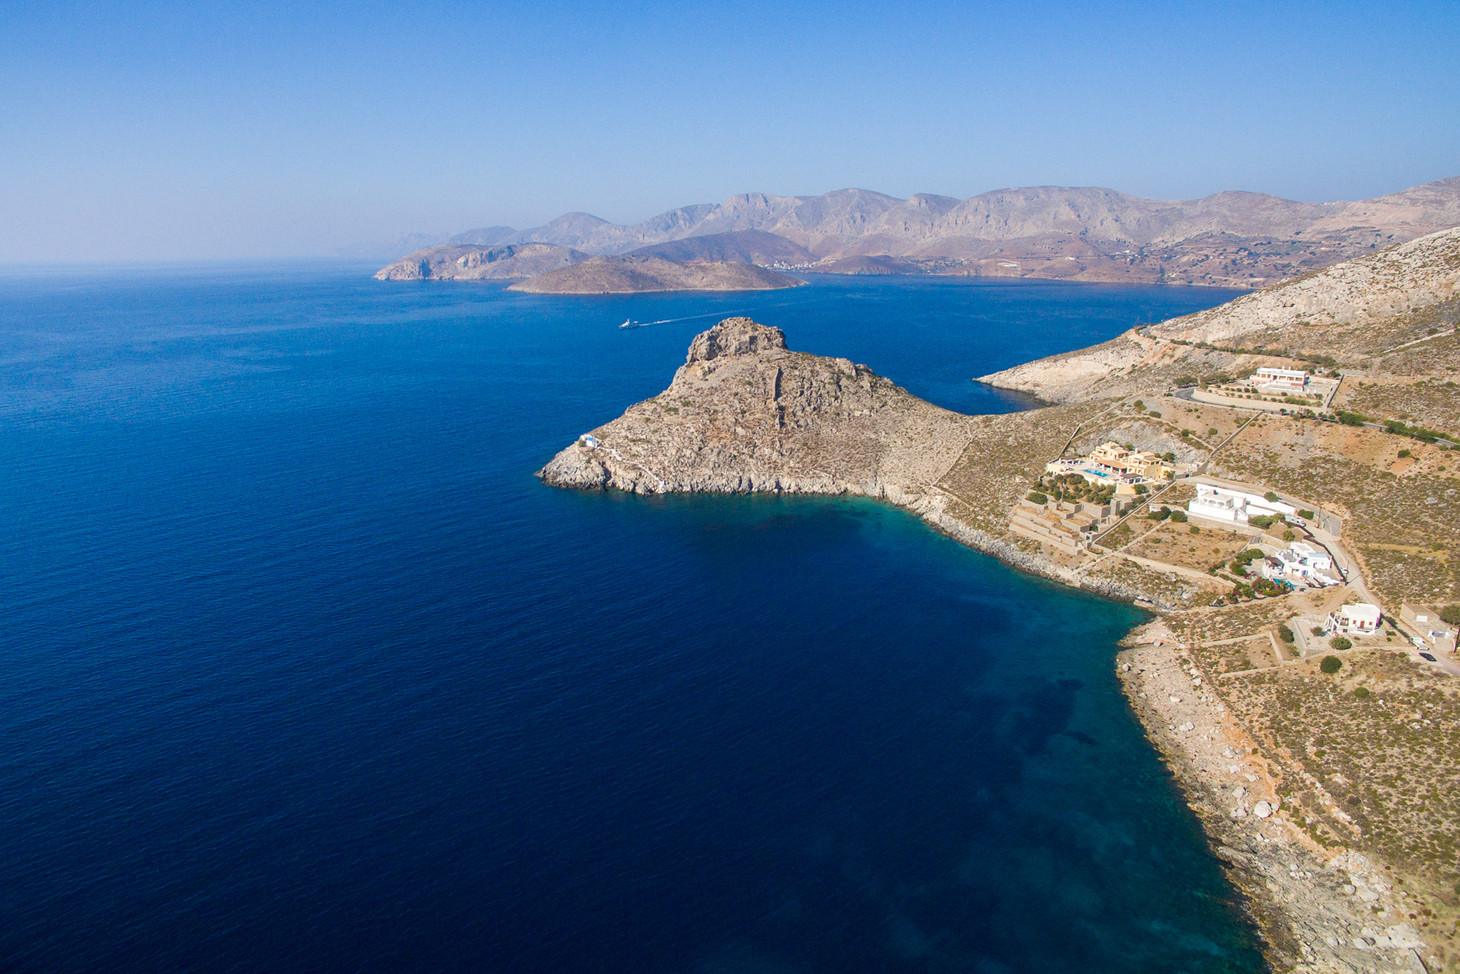 View of Kastelli Fort and the Aegean Sea, Kalymnos, Greece